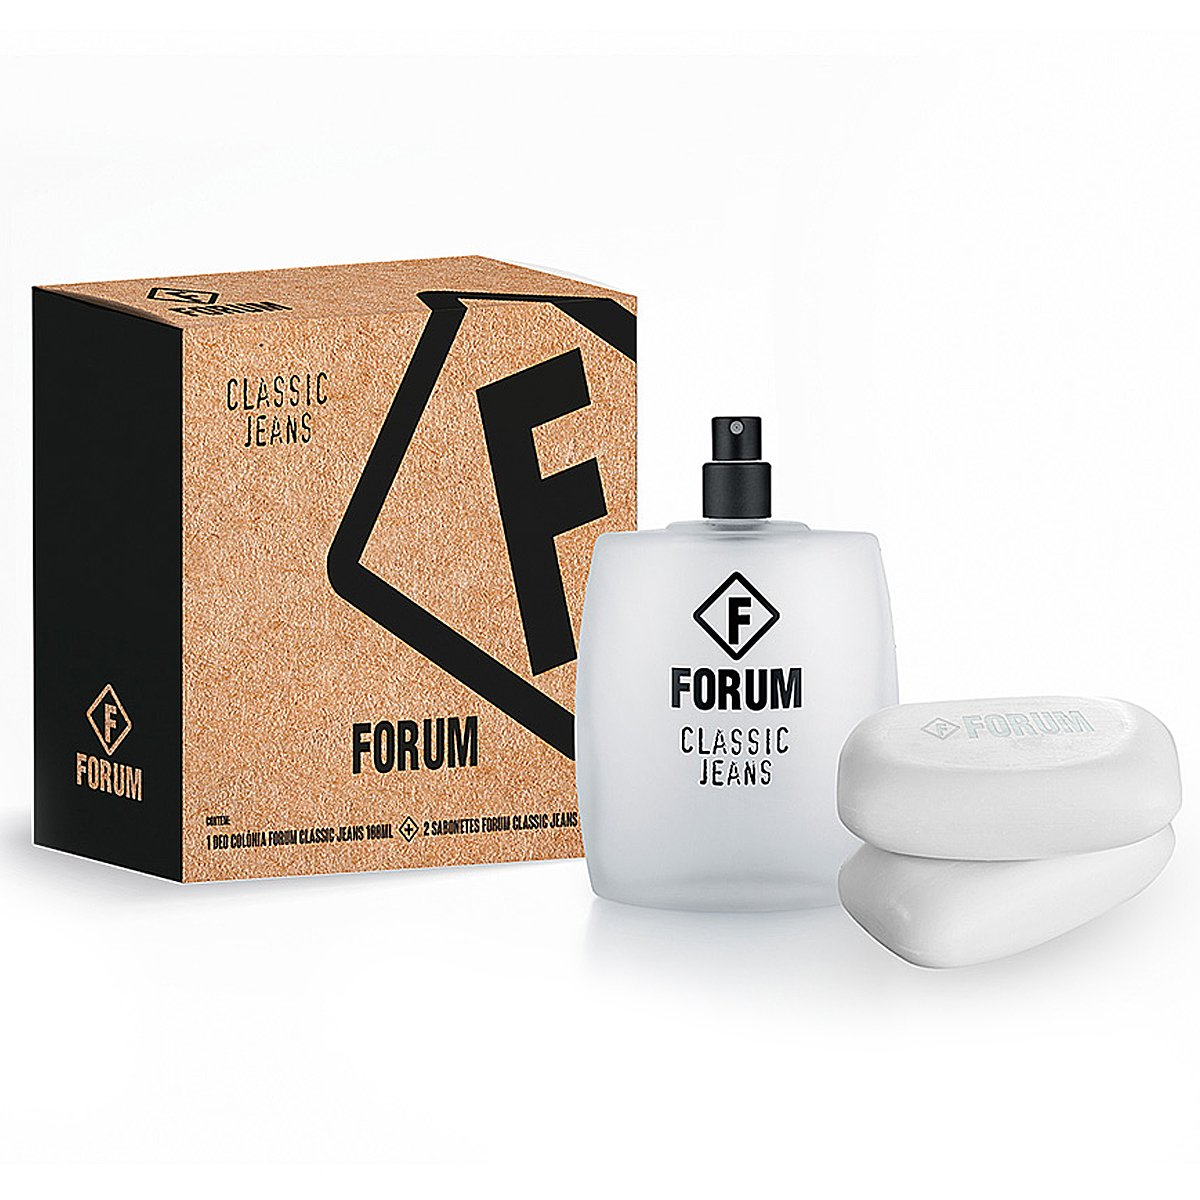 Forum Kit Jeans Unissex Deo Colônia 100ml + 2 Sabonetes 90g